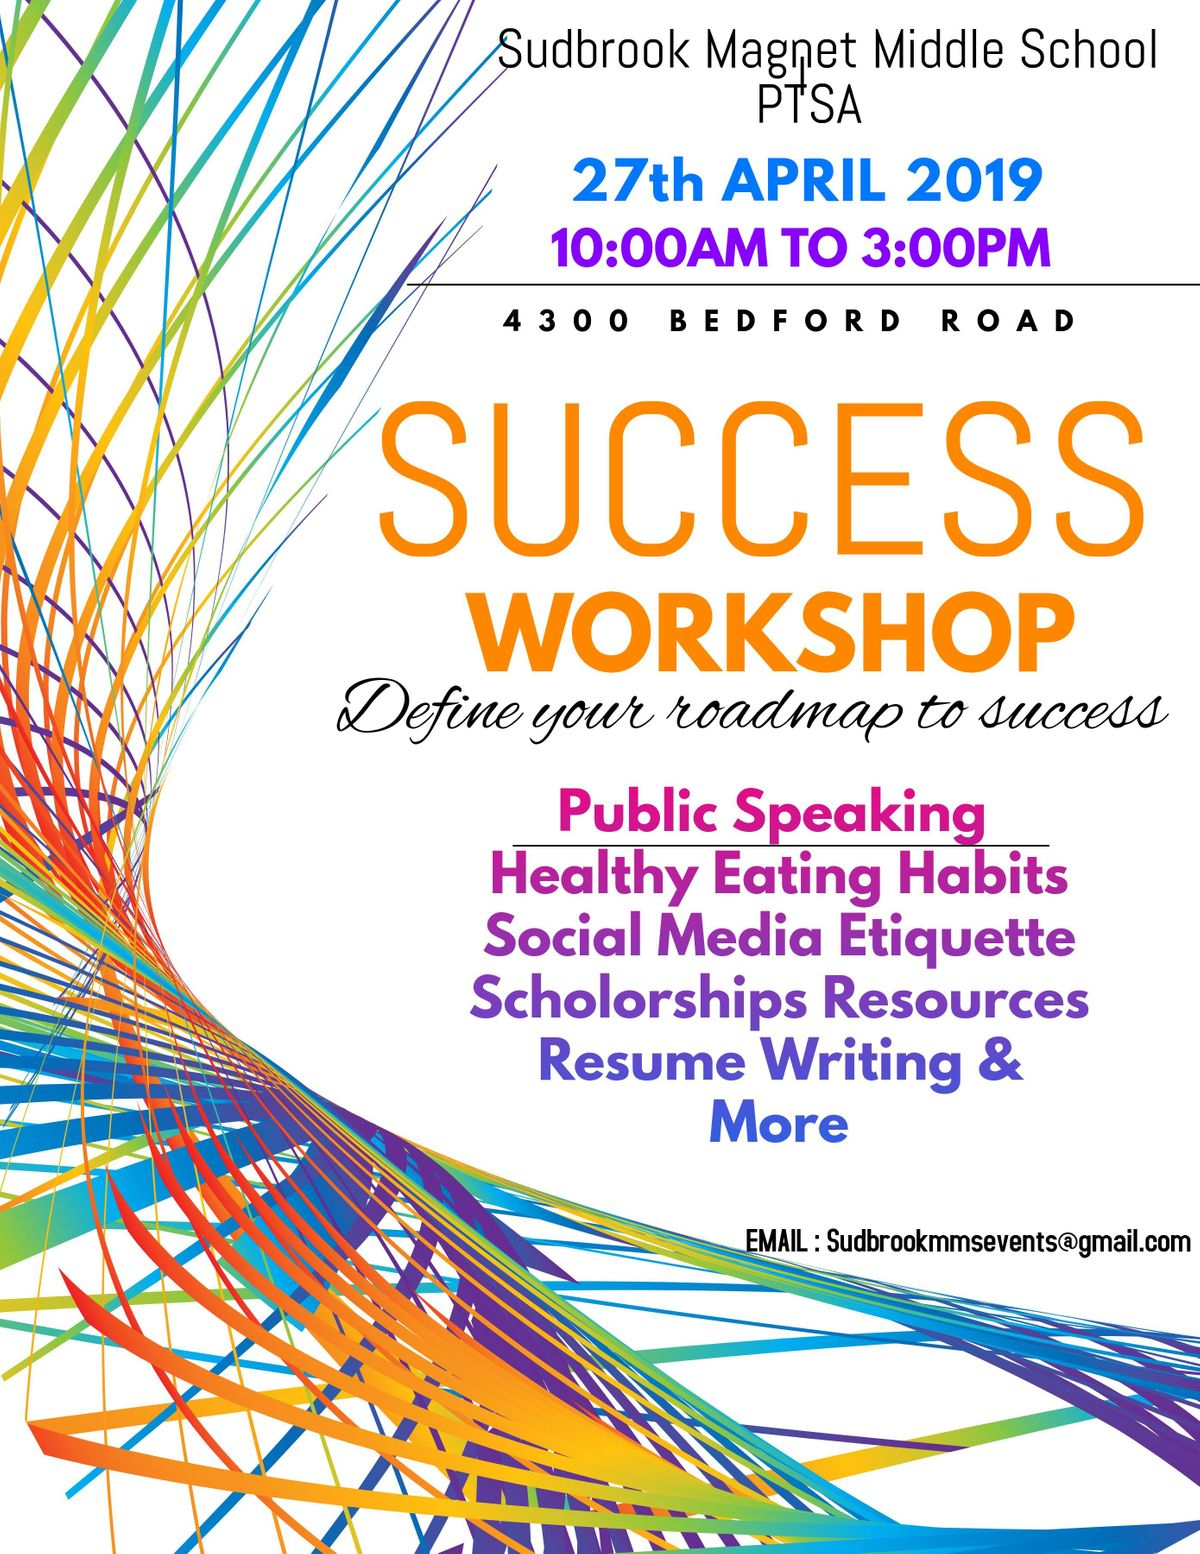 Free Workshop April 27th Speak For >> Success Workshop The Game Of Life Free Event At 4300 Bedford Rd